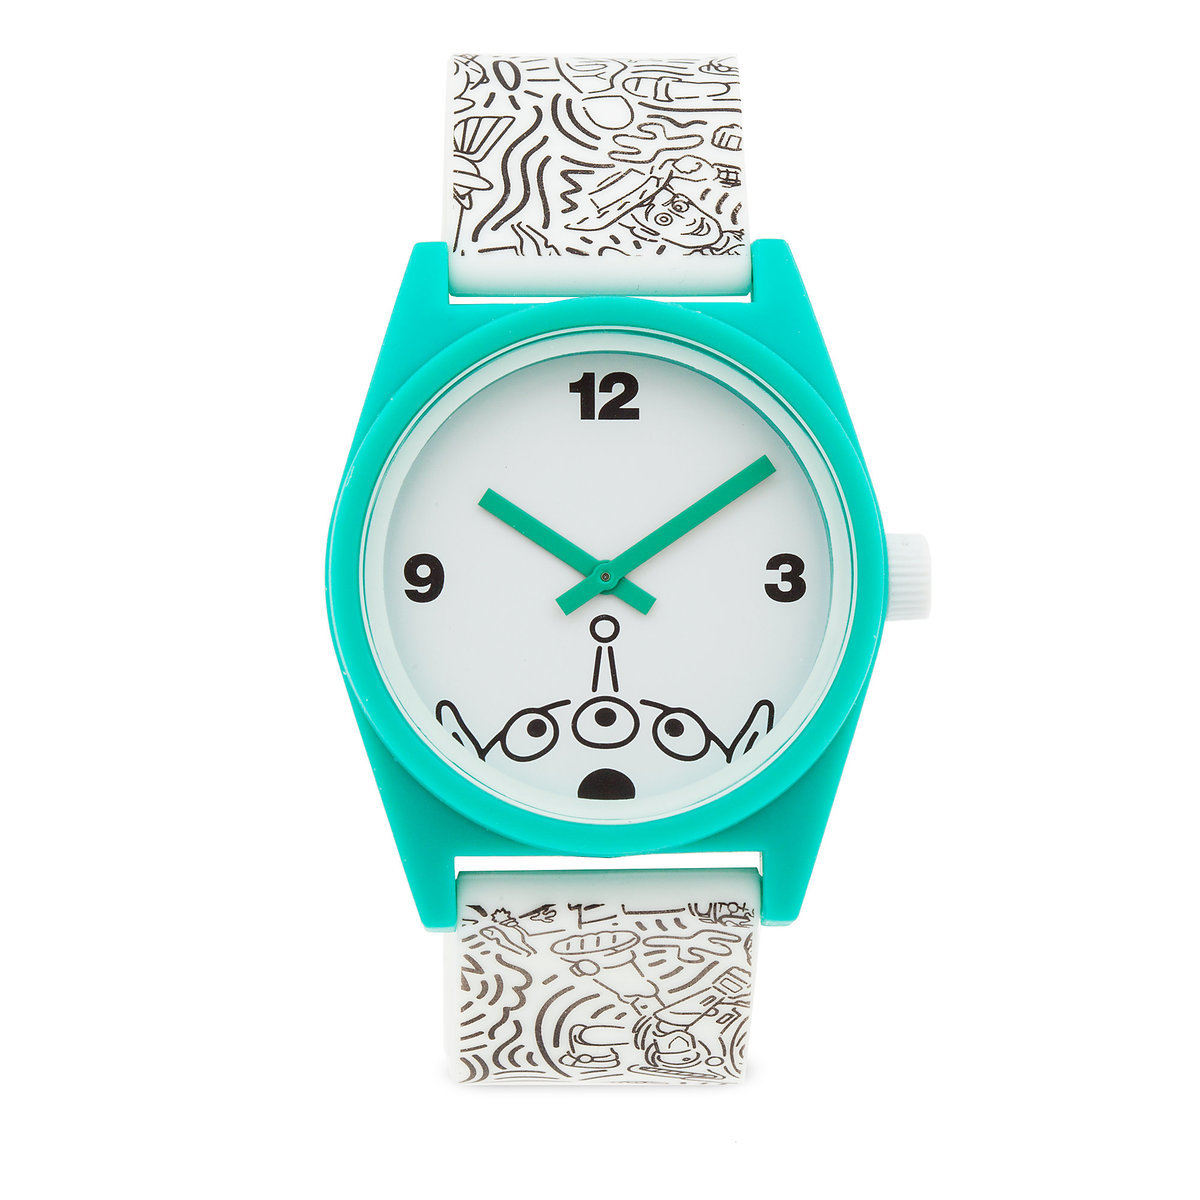 Toy Story Alien Watch by Neff | shopDisney